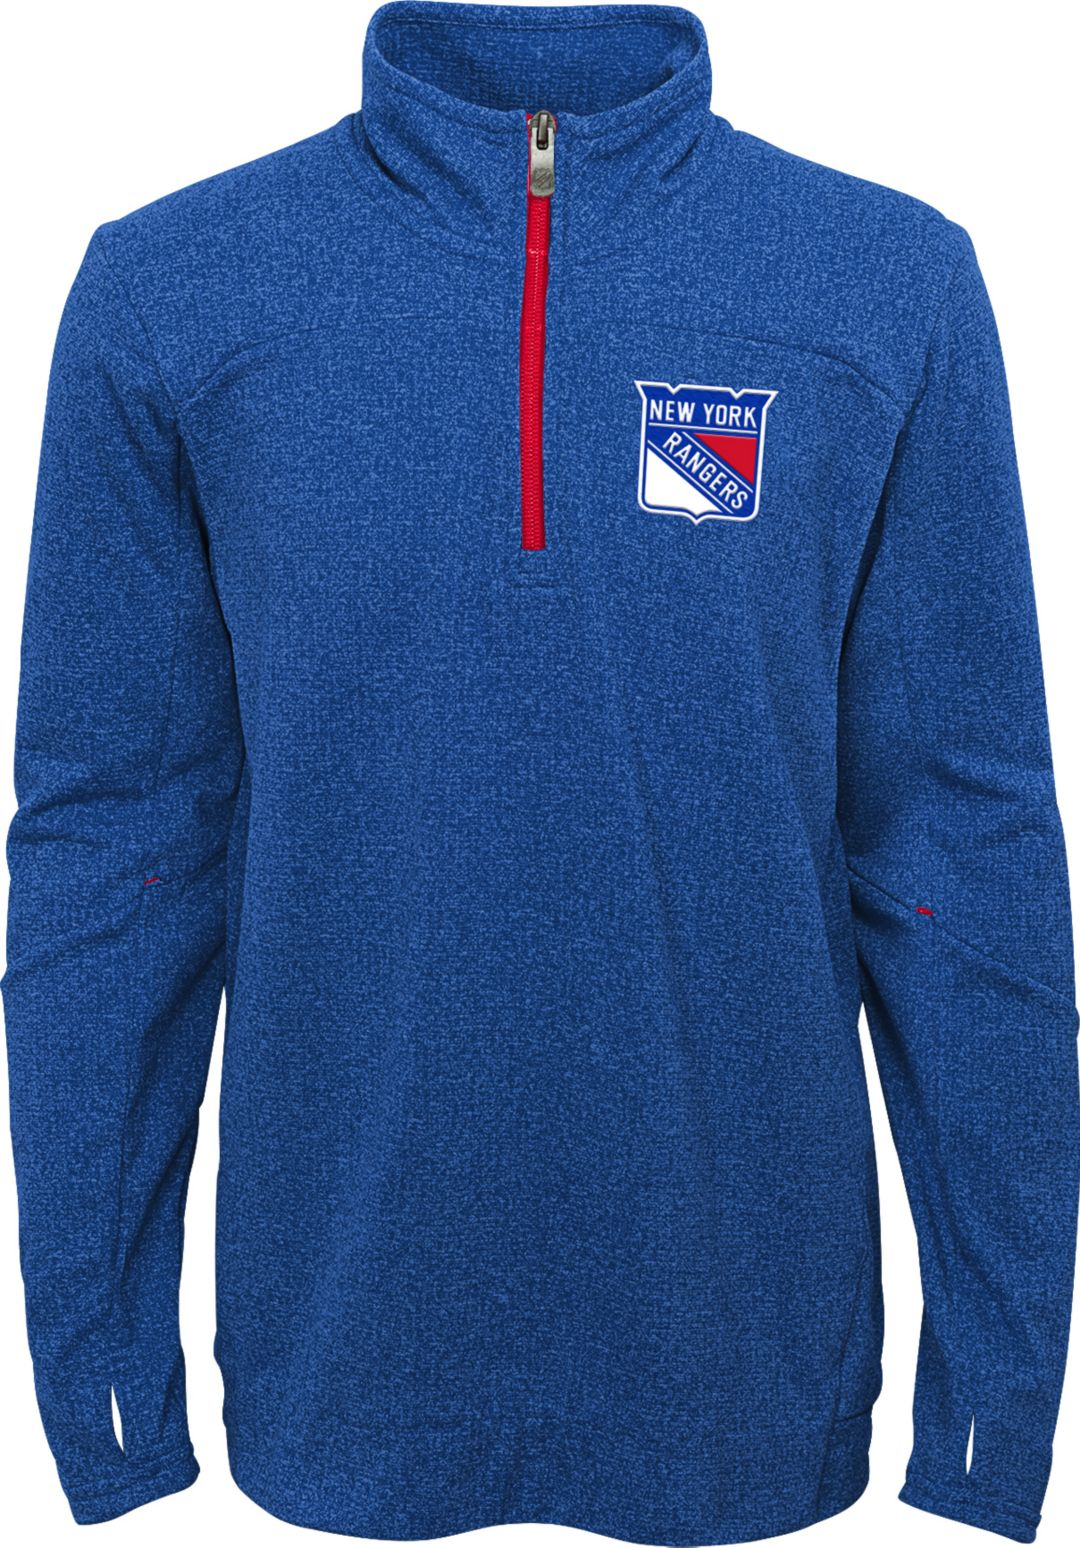 finest selection 7c0ba dd658 NHL Youth New York Rangers Polymer Blue Quarter-Zip Pullover